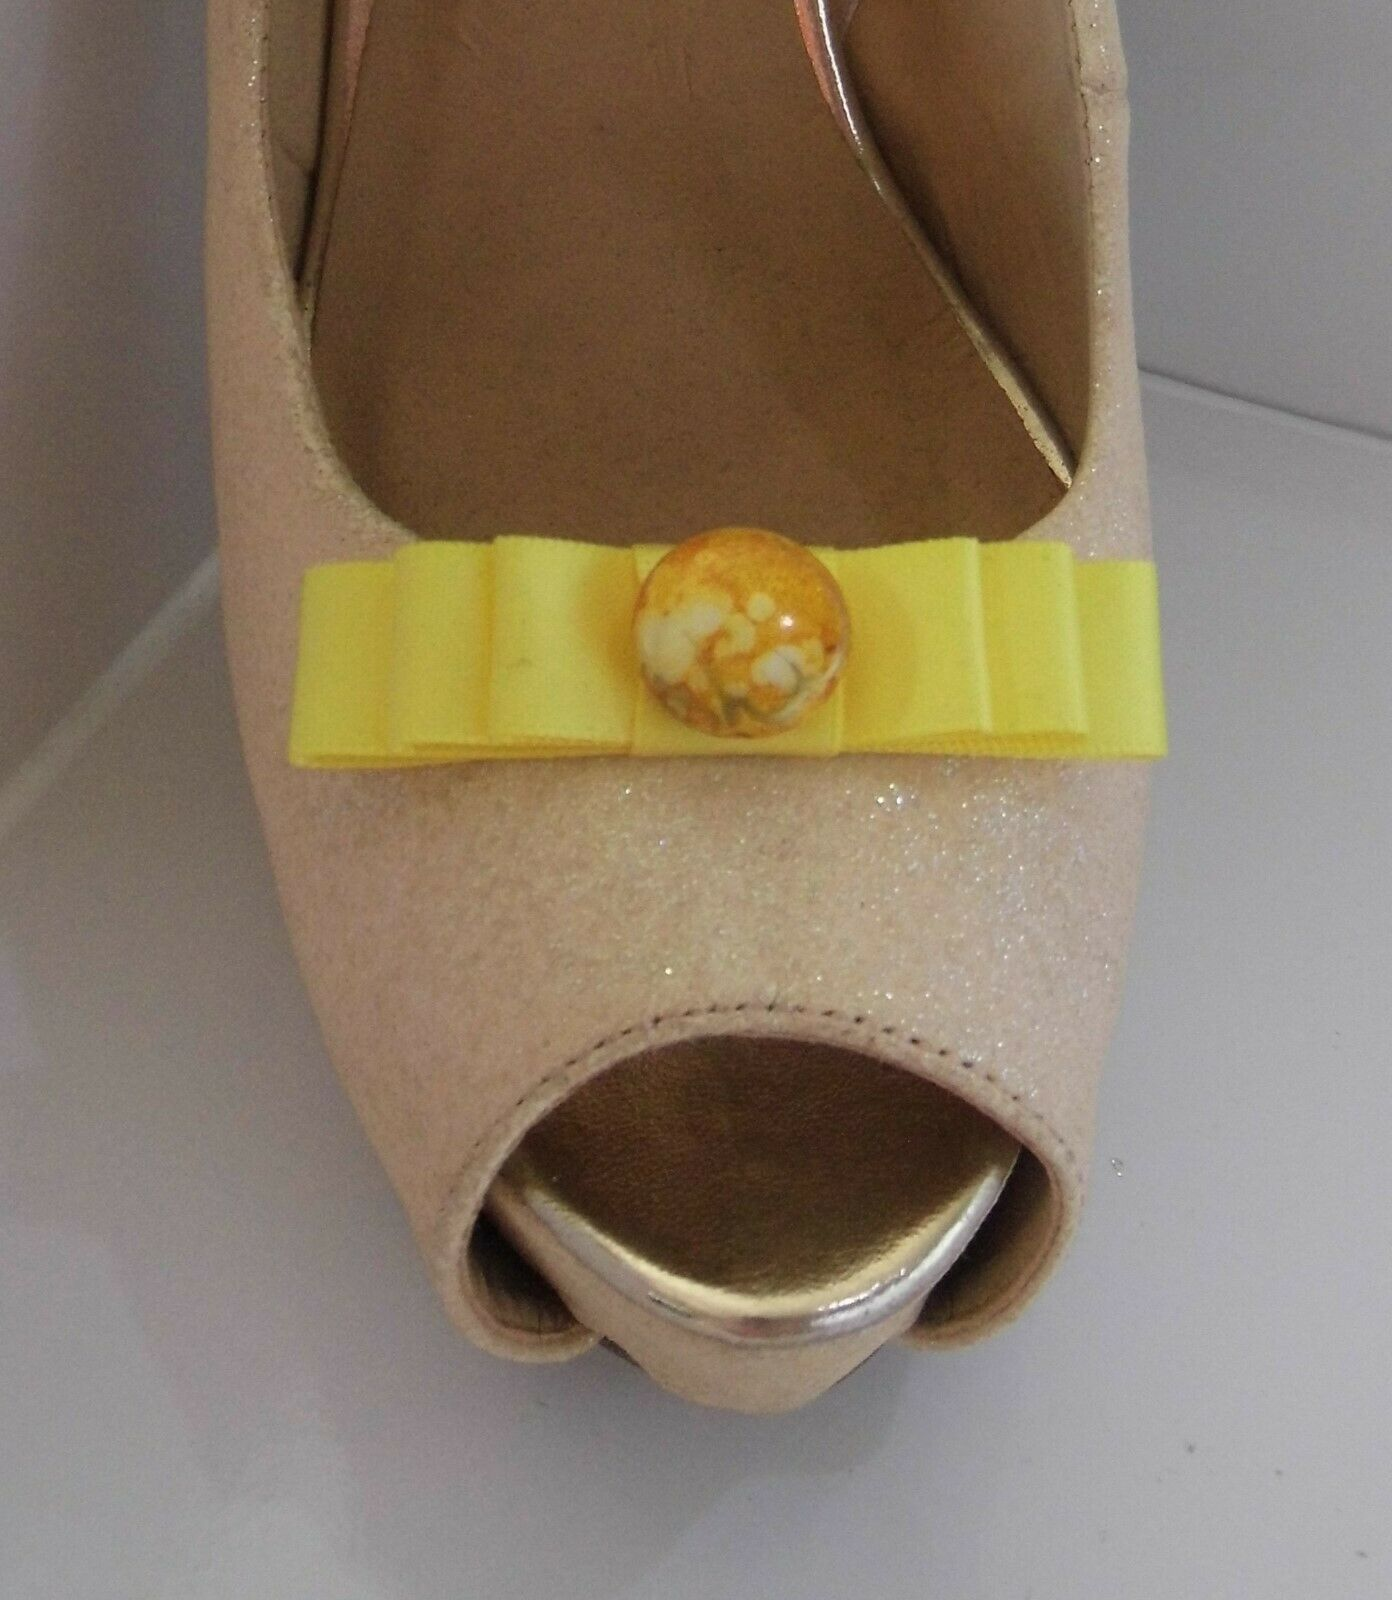 2 Small Lemon Bow Clips for Shoes with Marble Style Button Centre